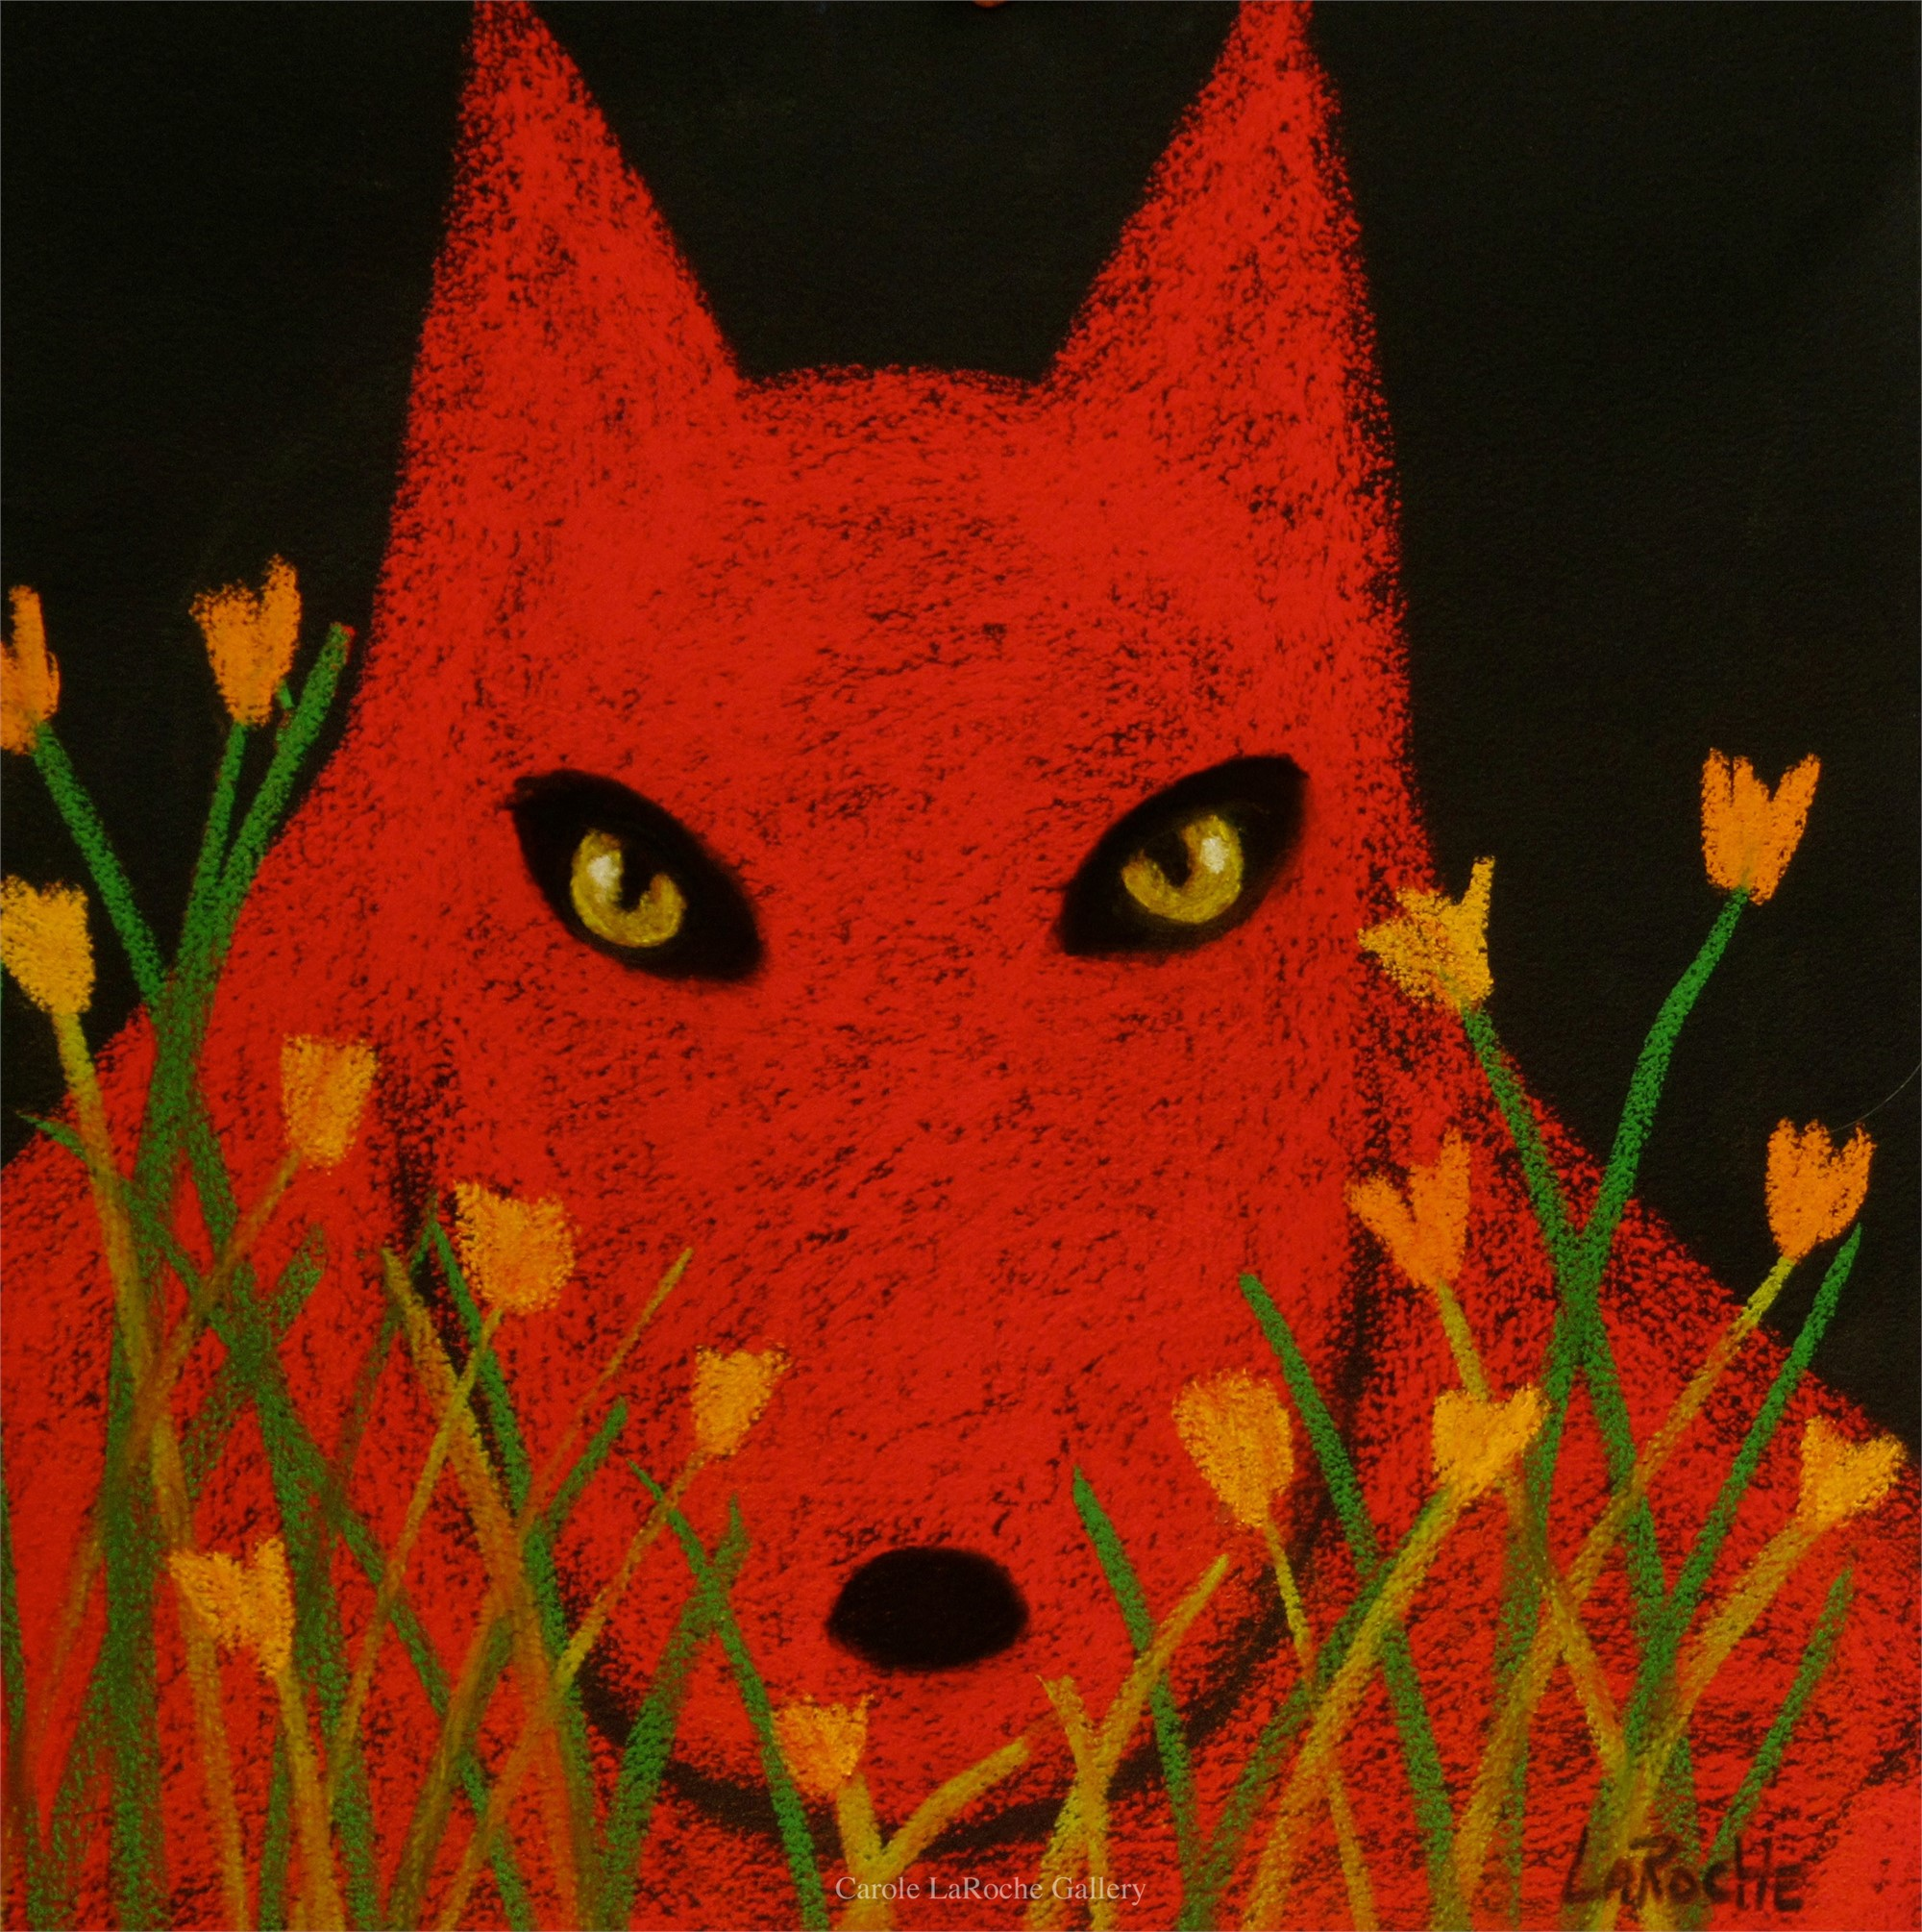 RED WOLF AND POPPIES by Carole LaRoche